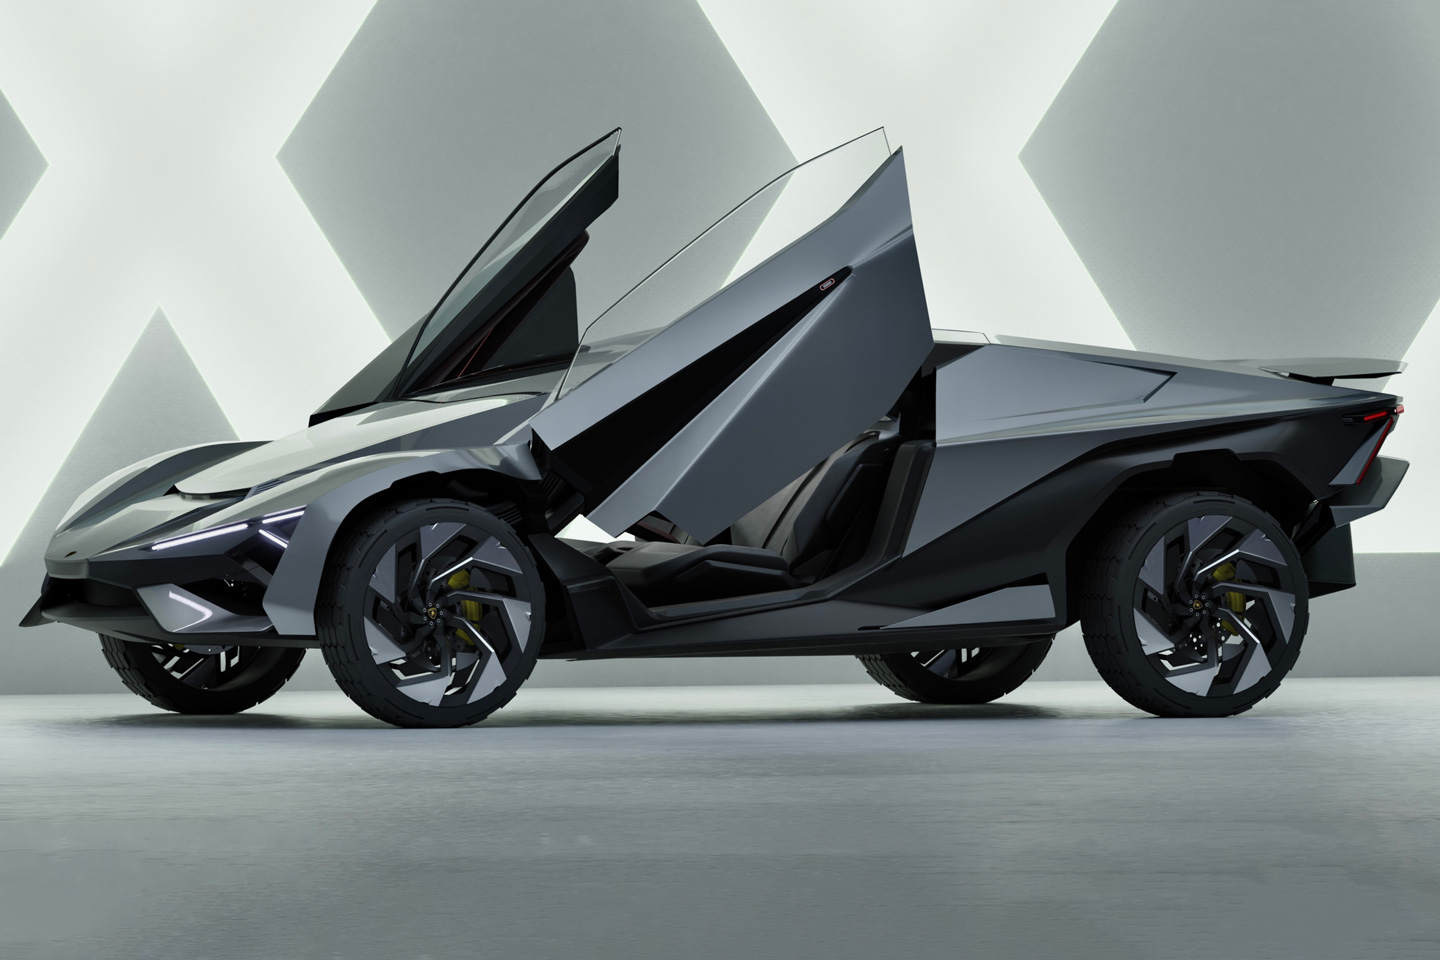 The outrageous Lamborghini Xeno concept looks like it would make regular hypercars run back to their mommies